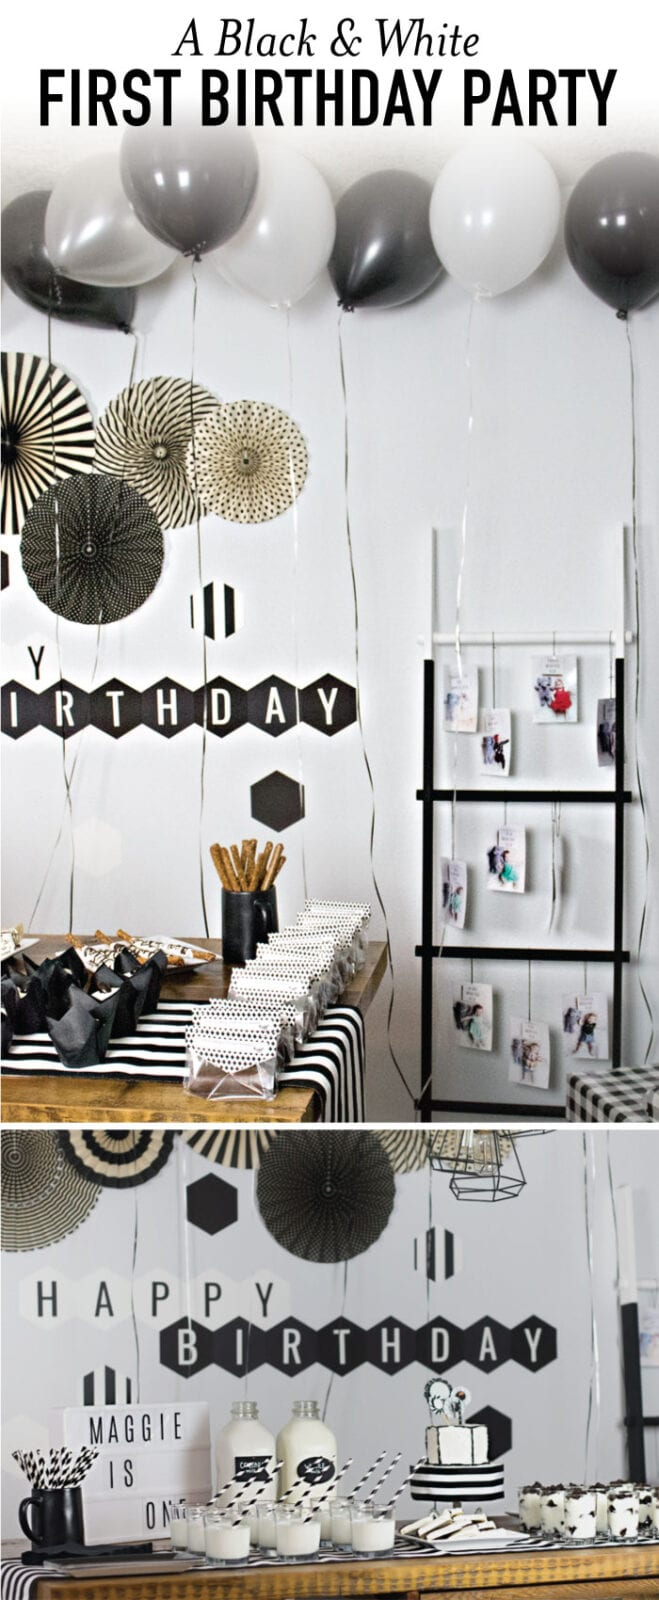 Black and White Birthday Party | A Fun First Birthday Bash!